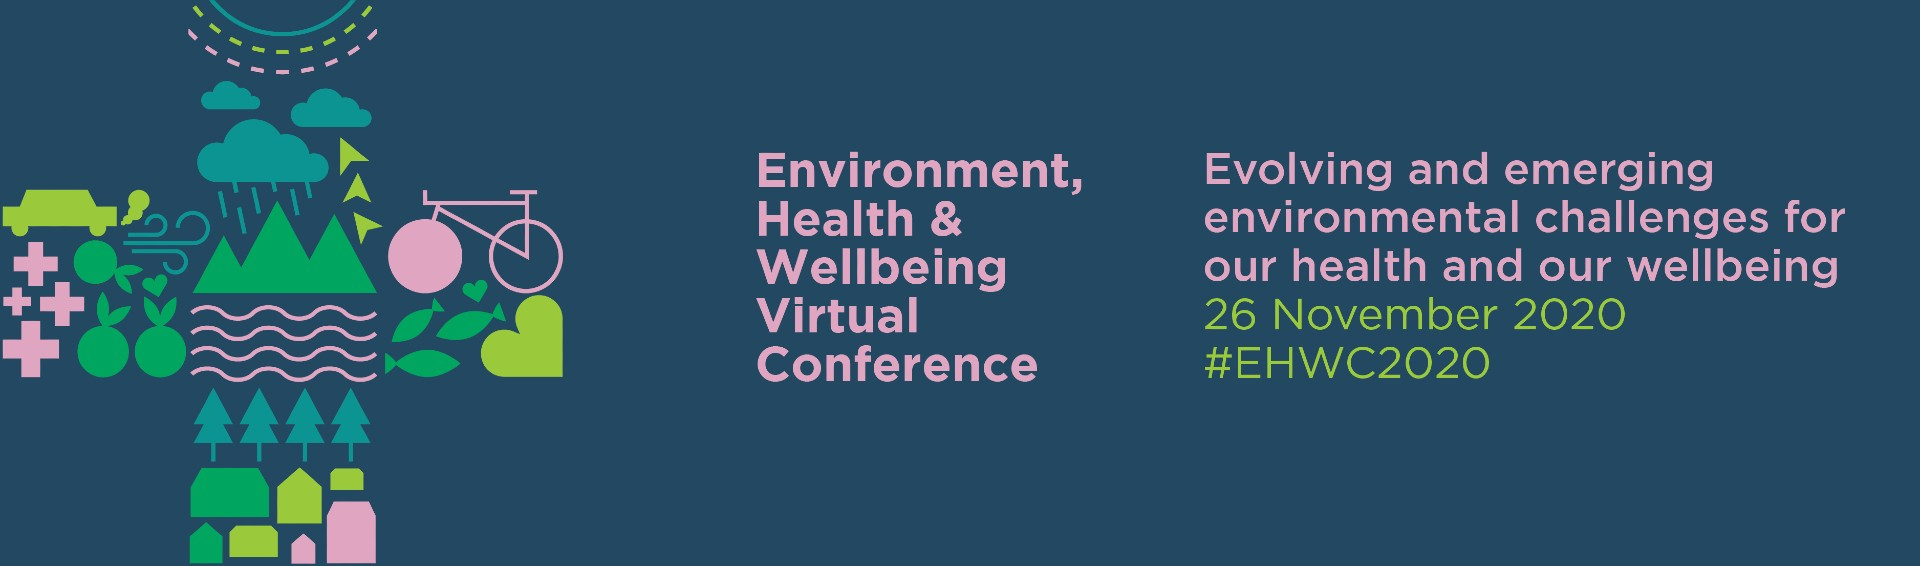 Environment, Health & Wellbeing Conference 2020